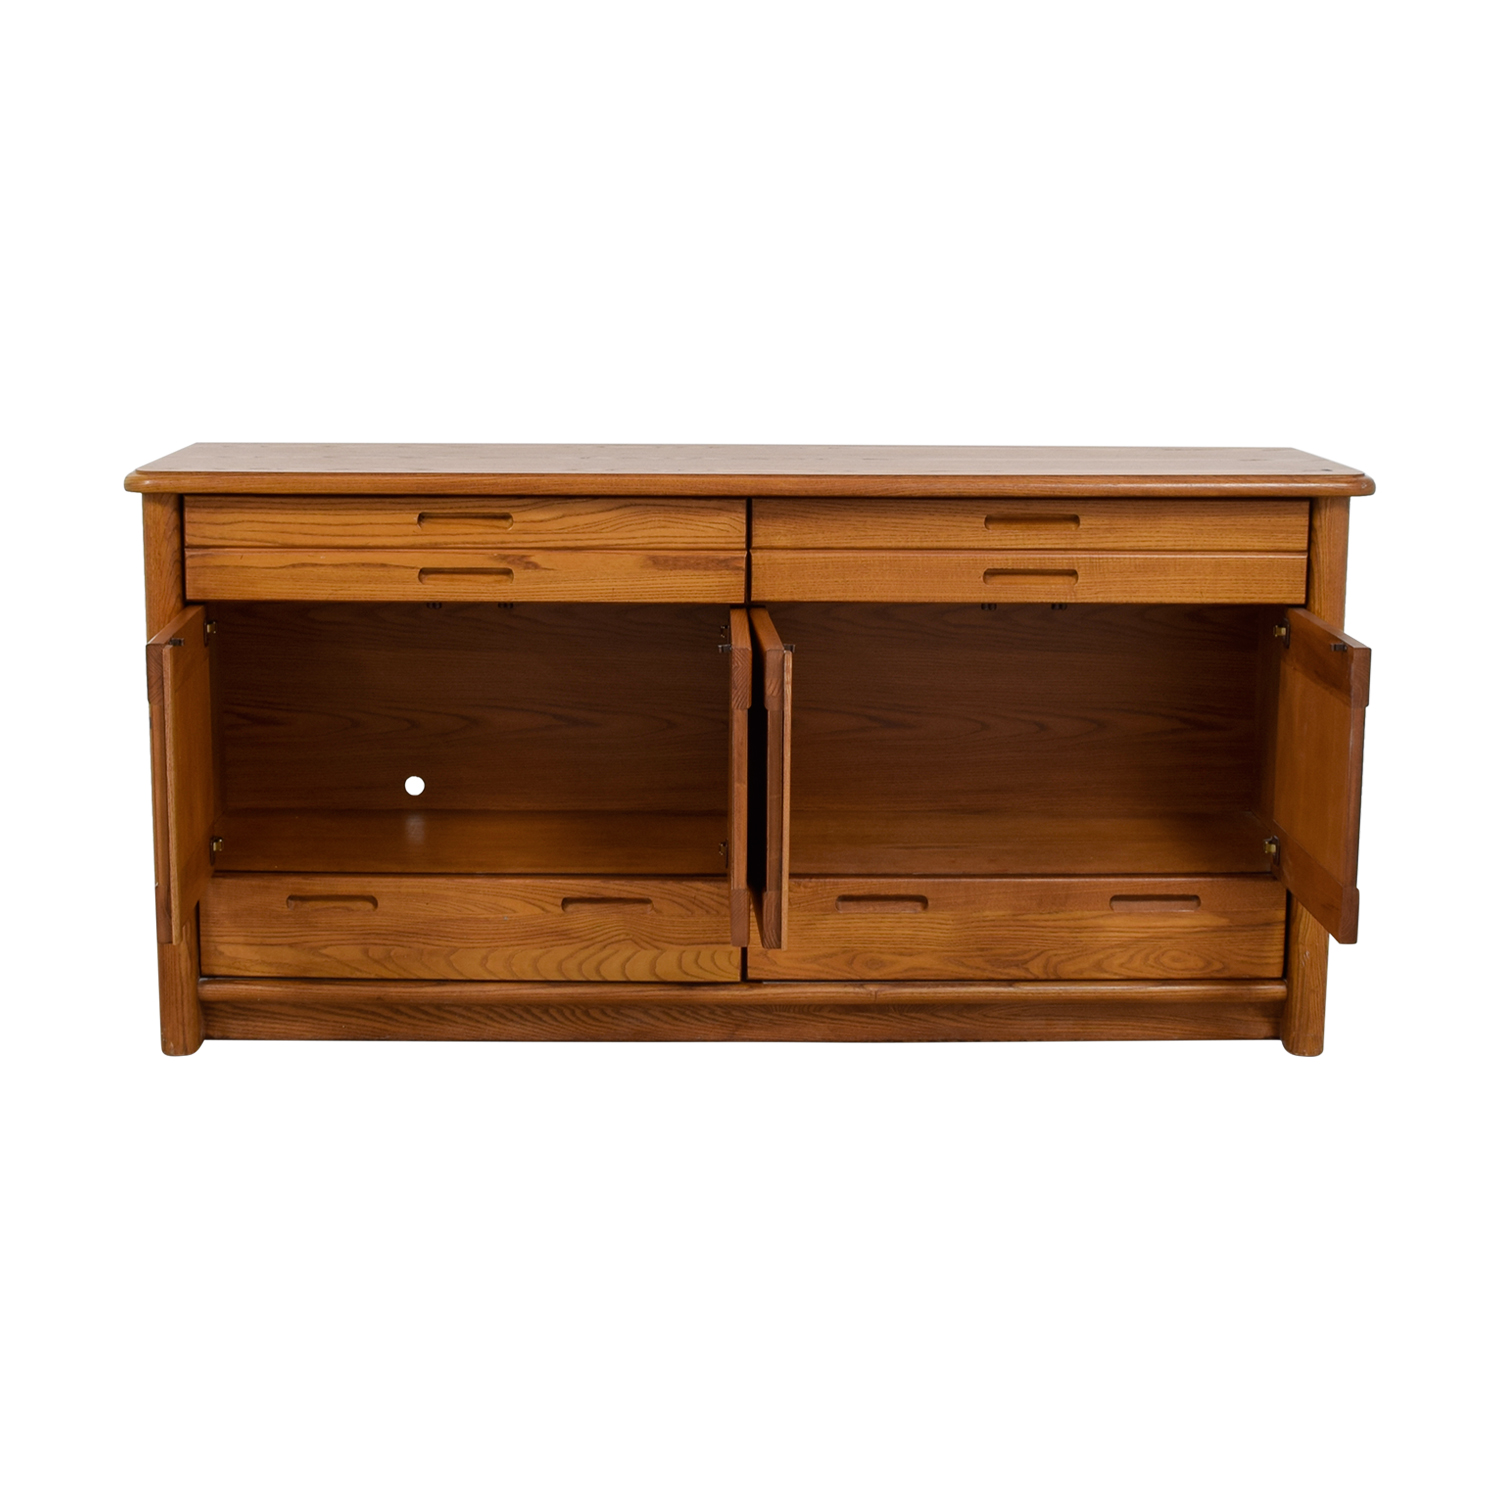 Thomasville Thomasville Wood Buffet Cabinet nj